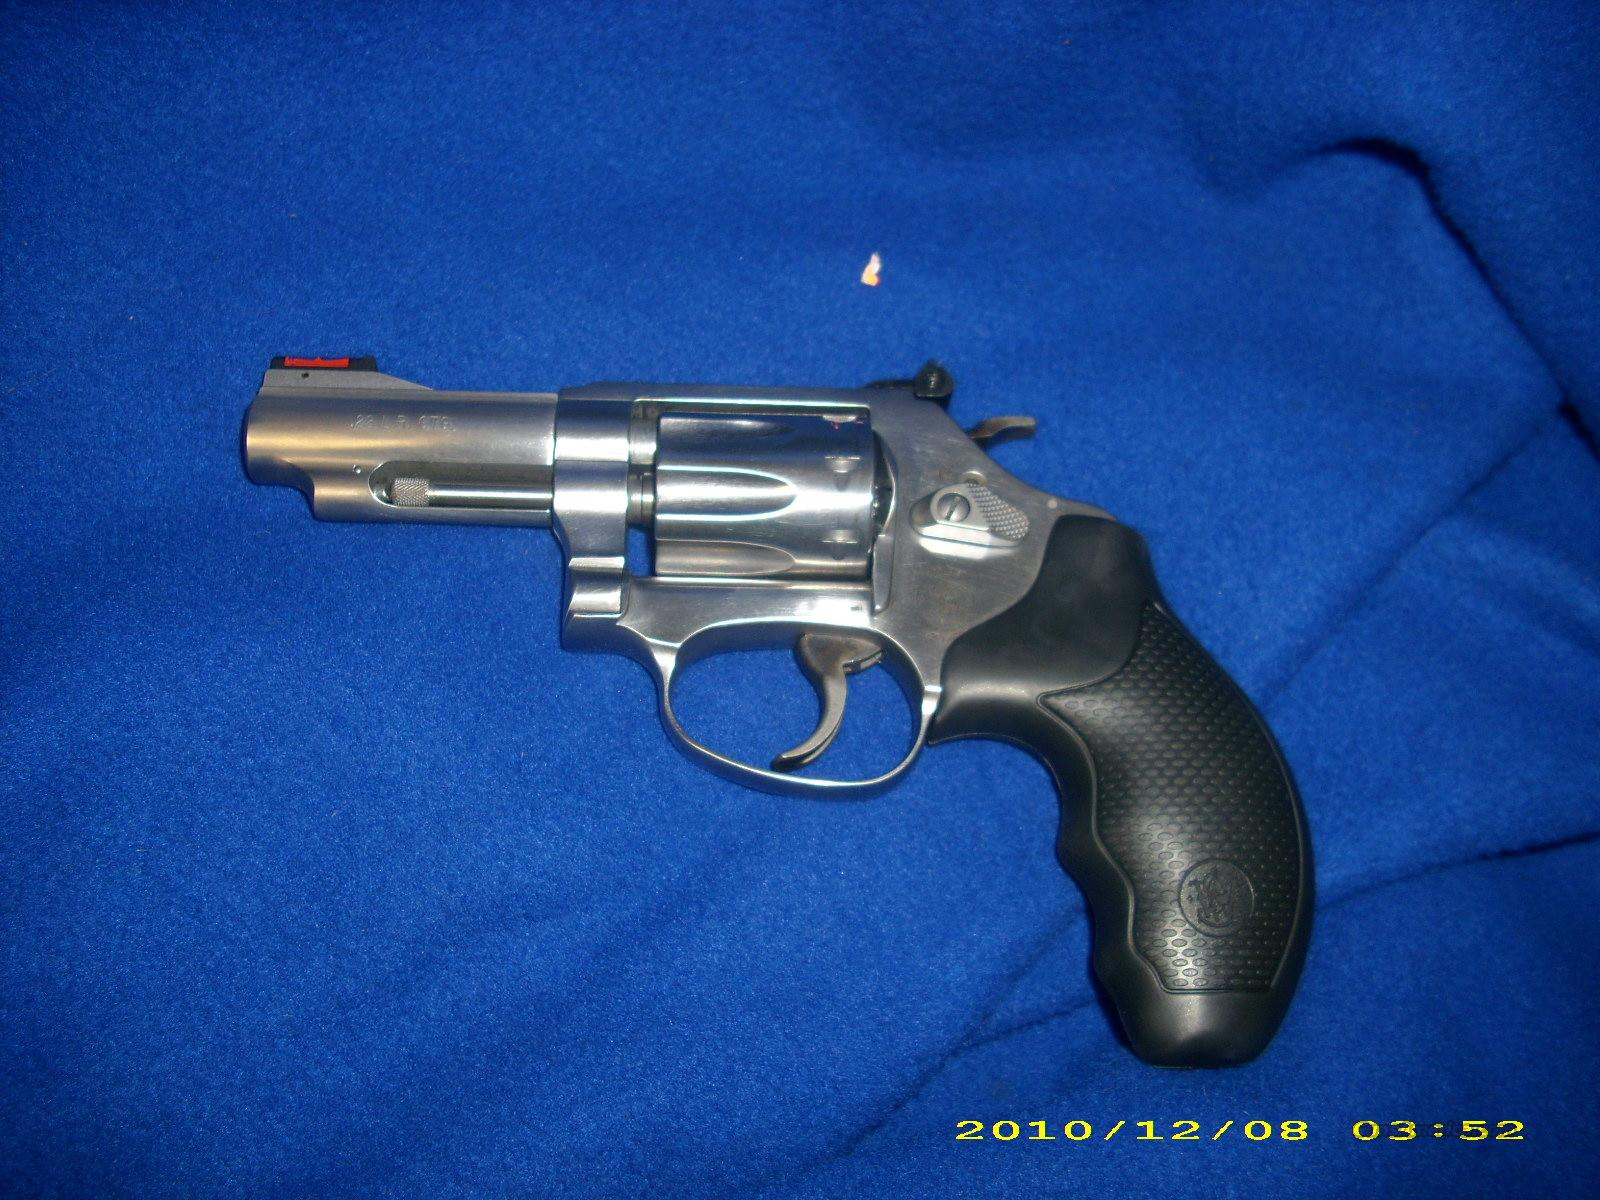 Smith and Wesson 63 22LR  Guns > Pistols > Smith & Wesson Revolvers > Pocket Pistols